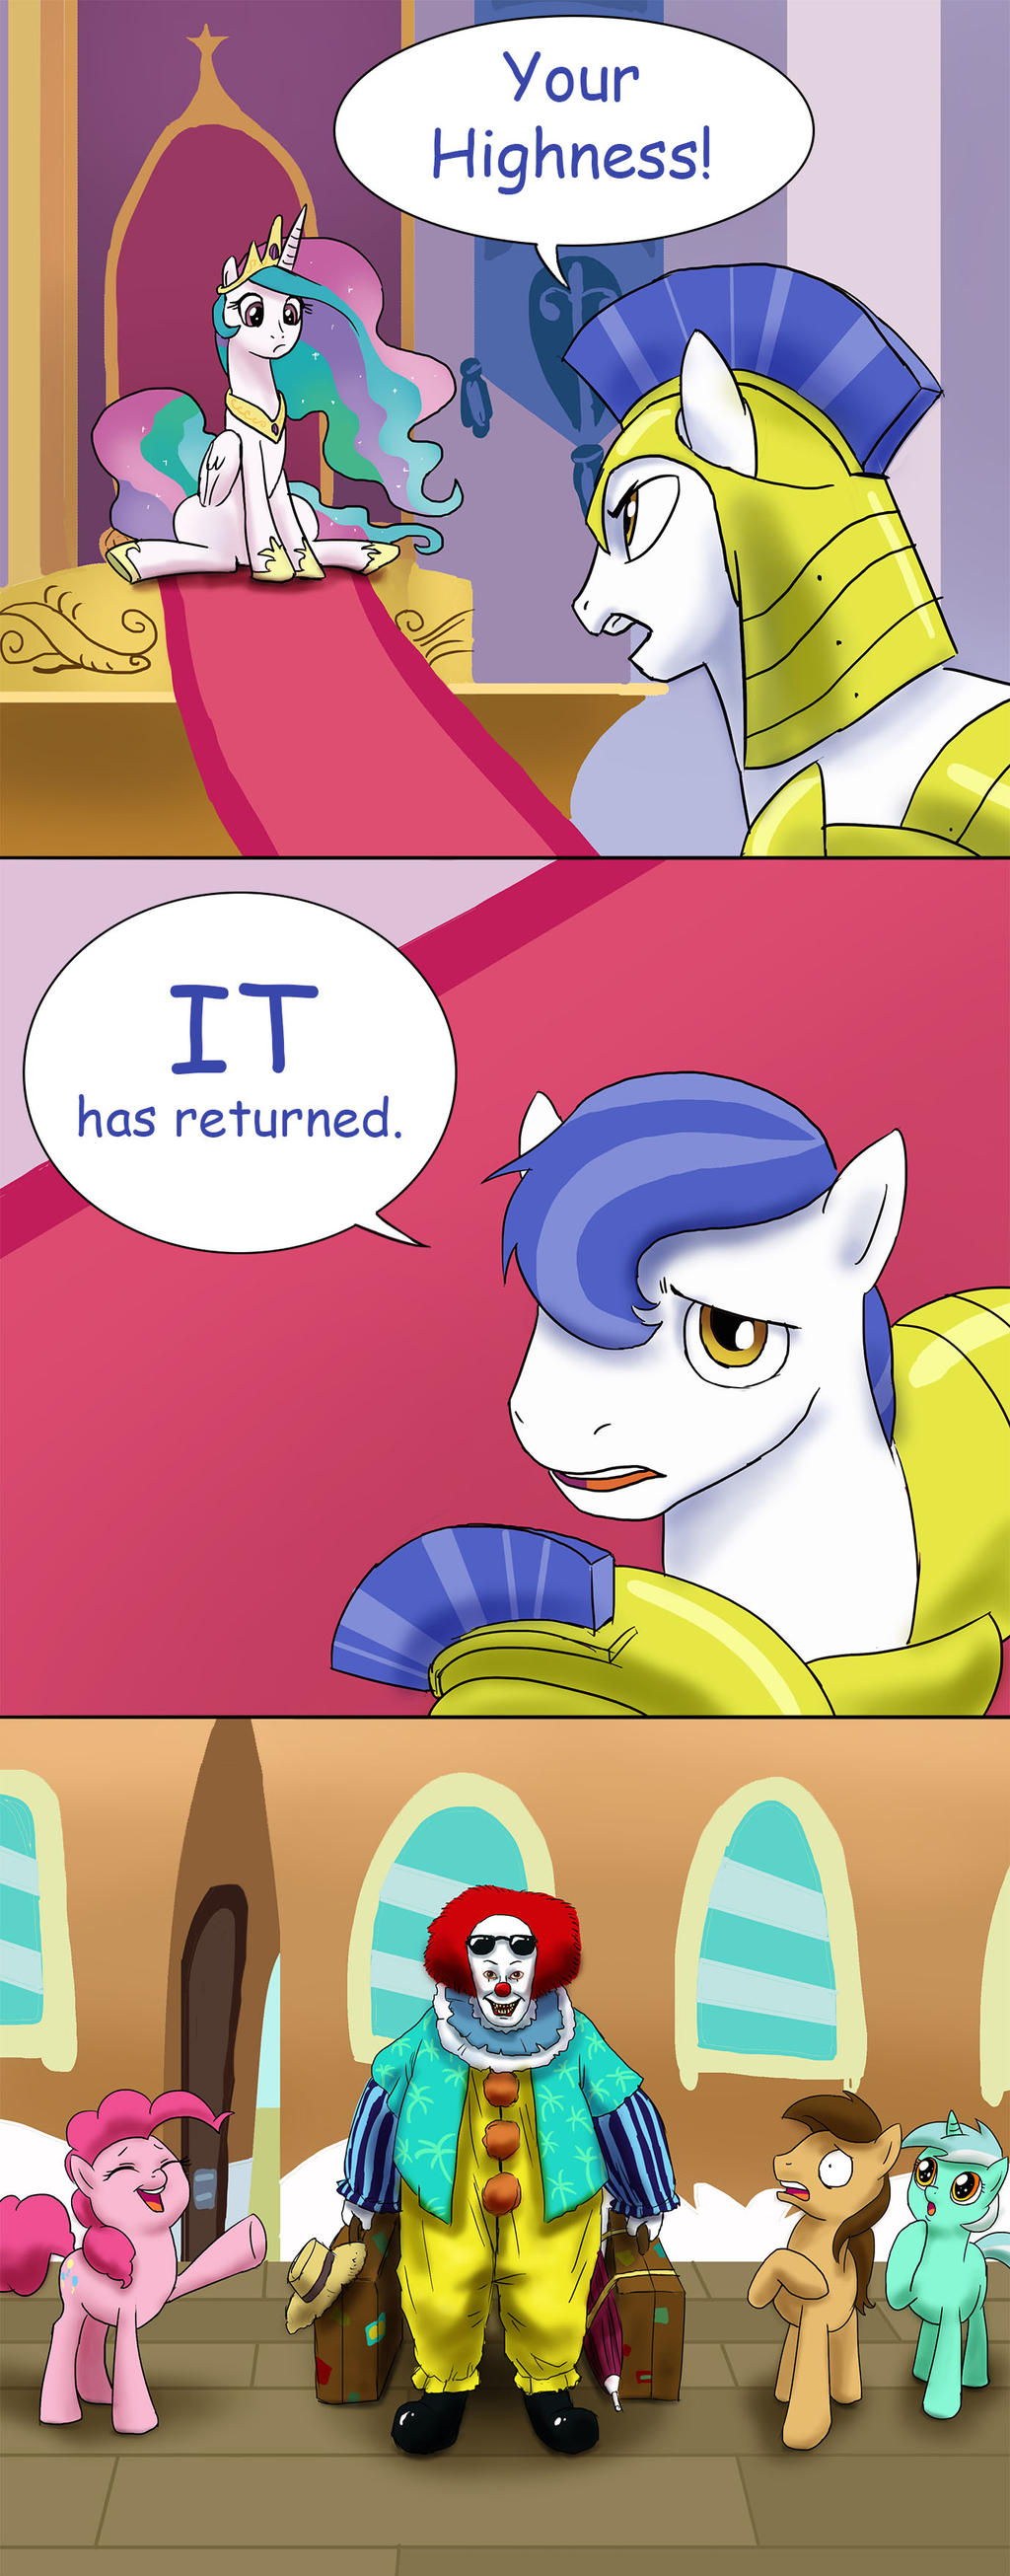 IT has returned by doubleWbrothers